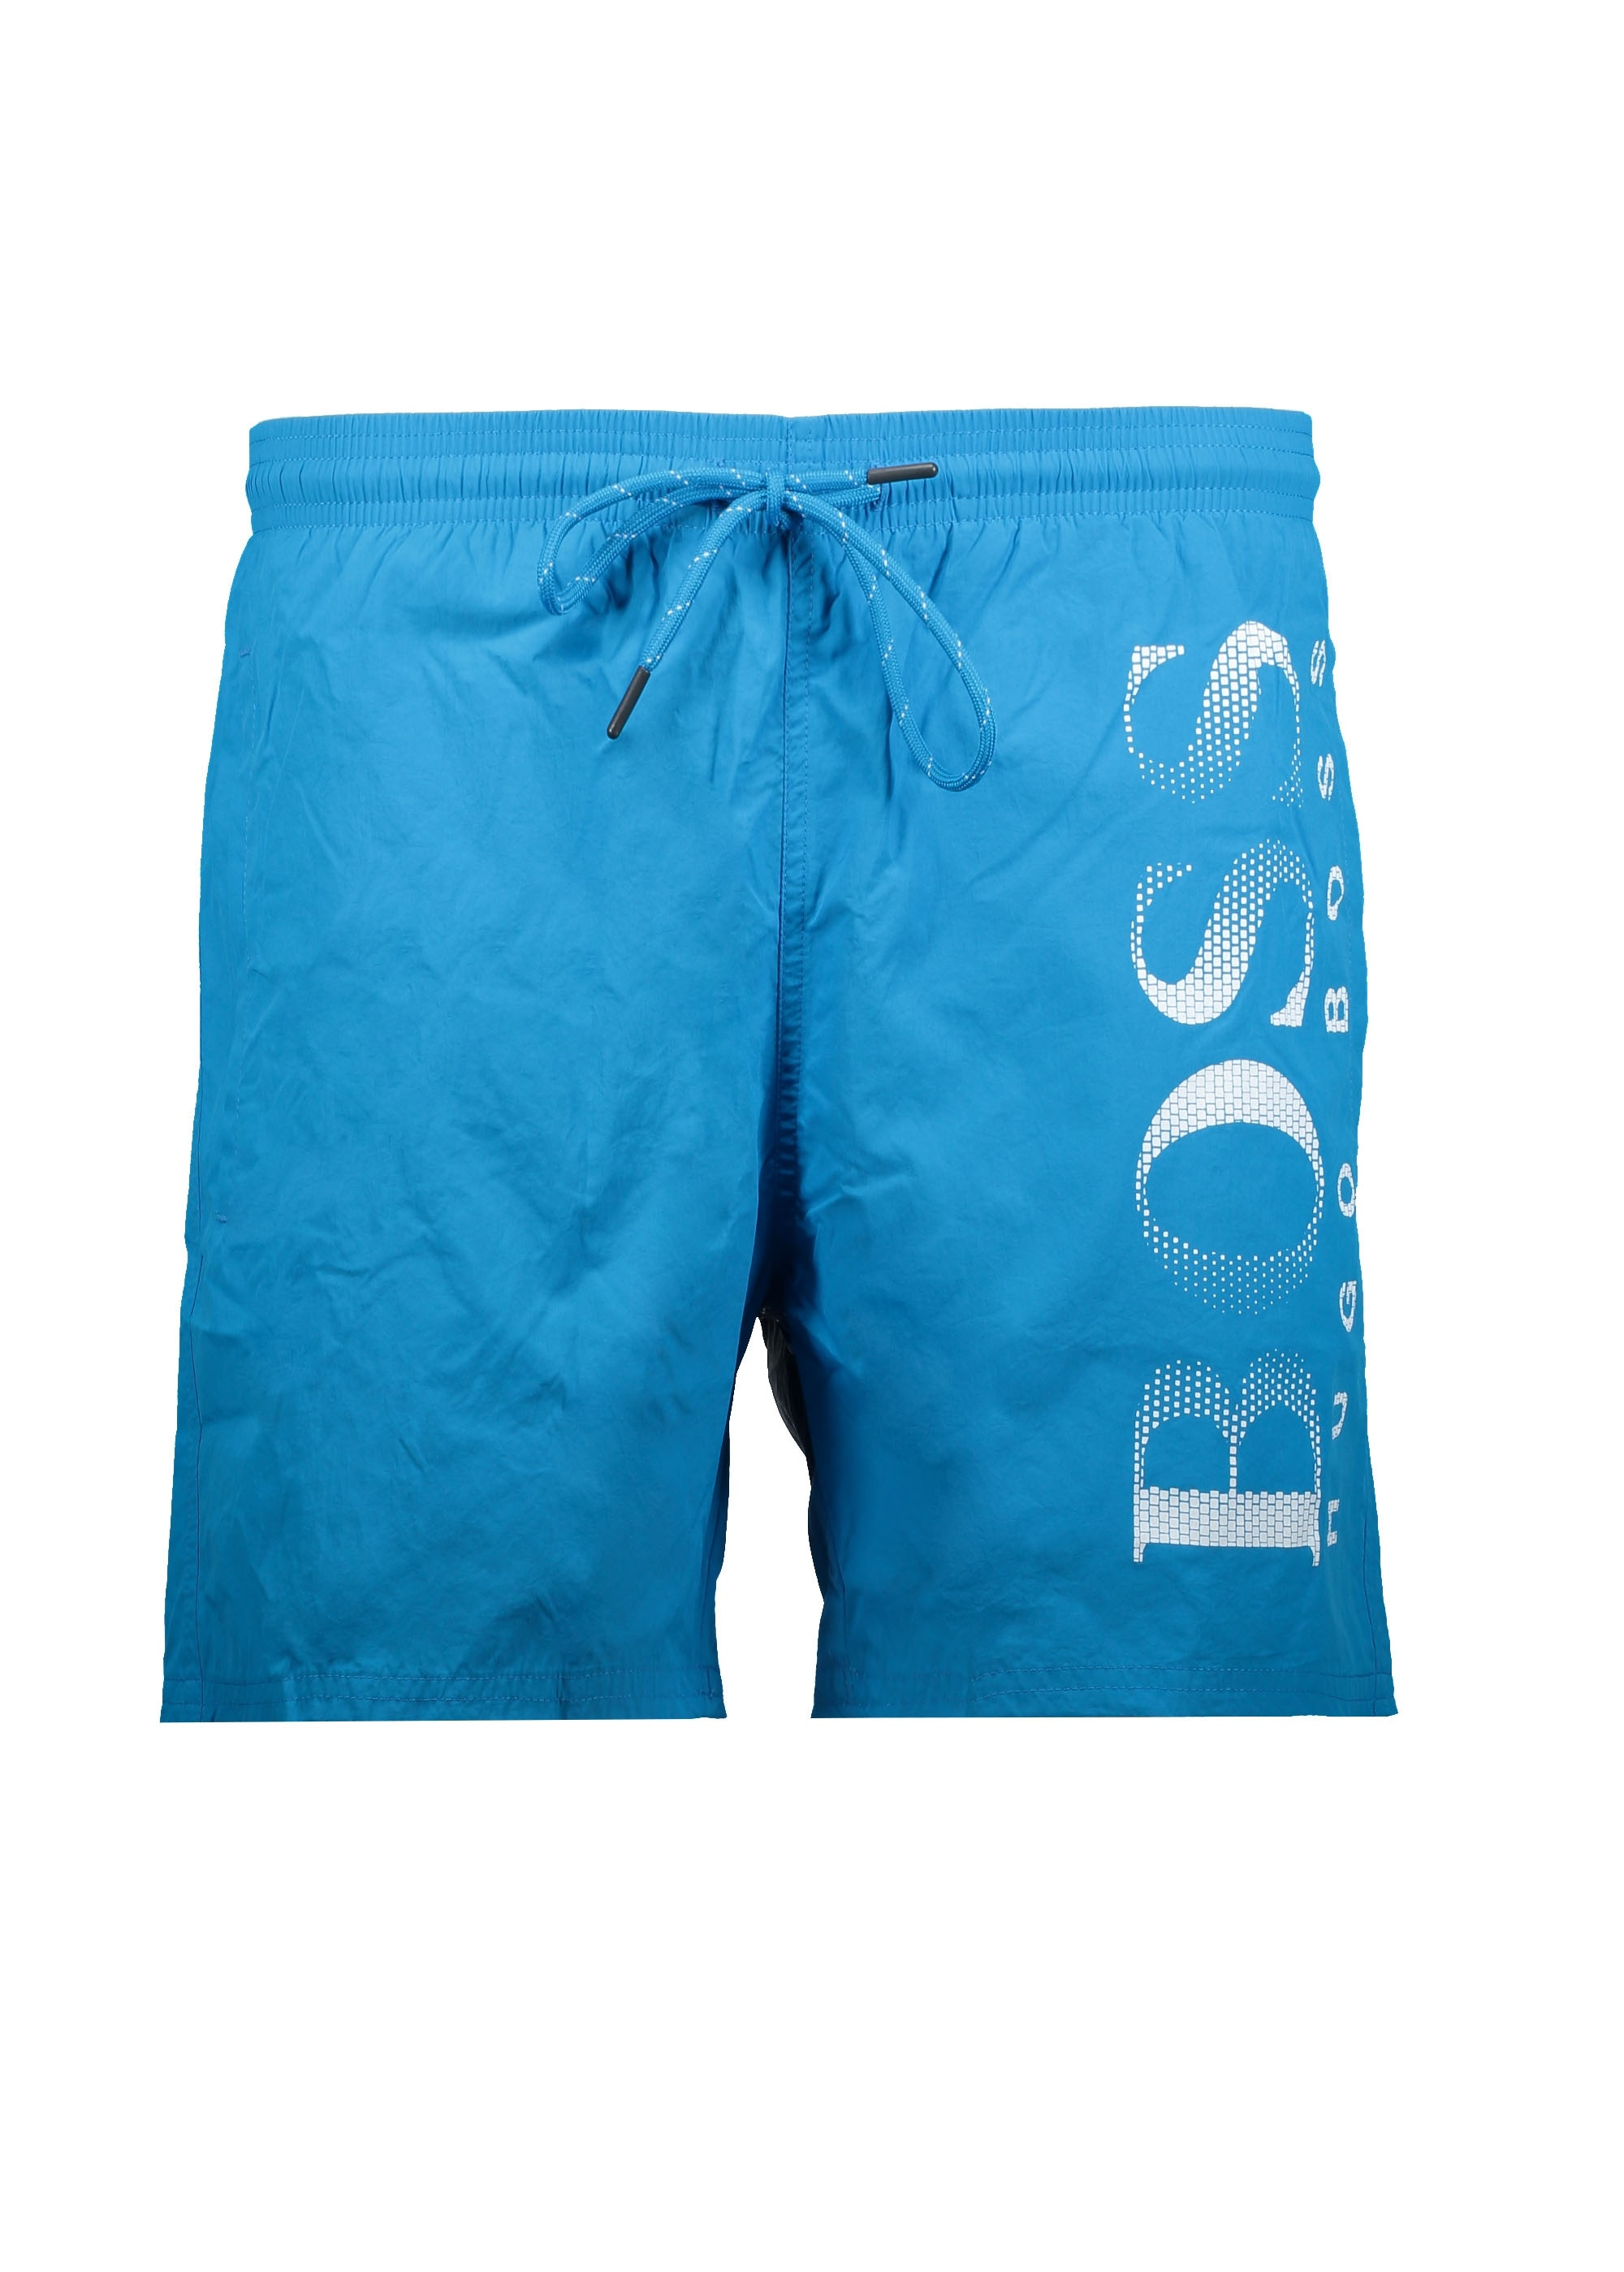 c740bd873 Hugo Boss Octopus Shorts 441 - Turquoise - Triads Mens from Triads UK